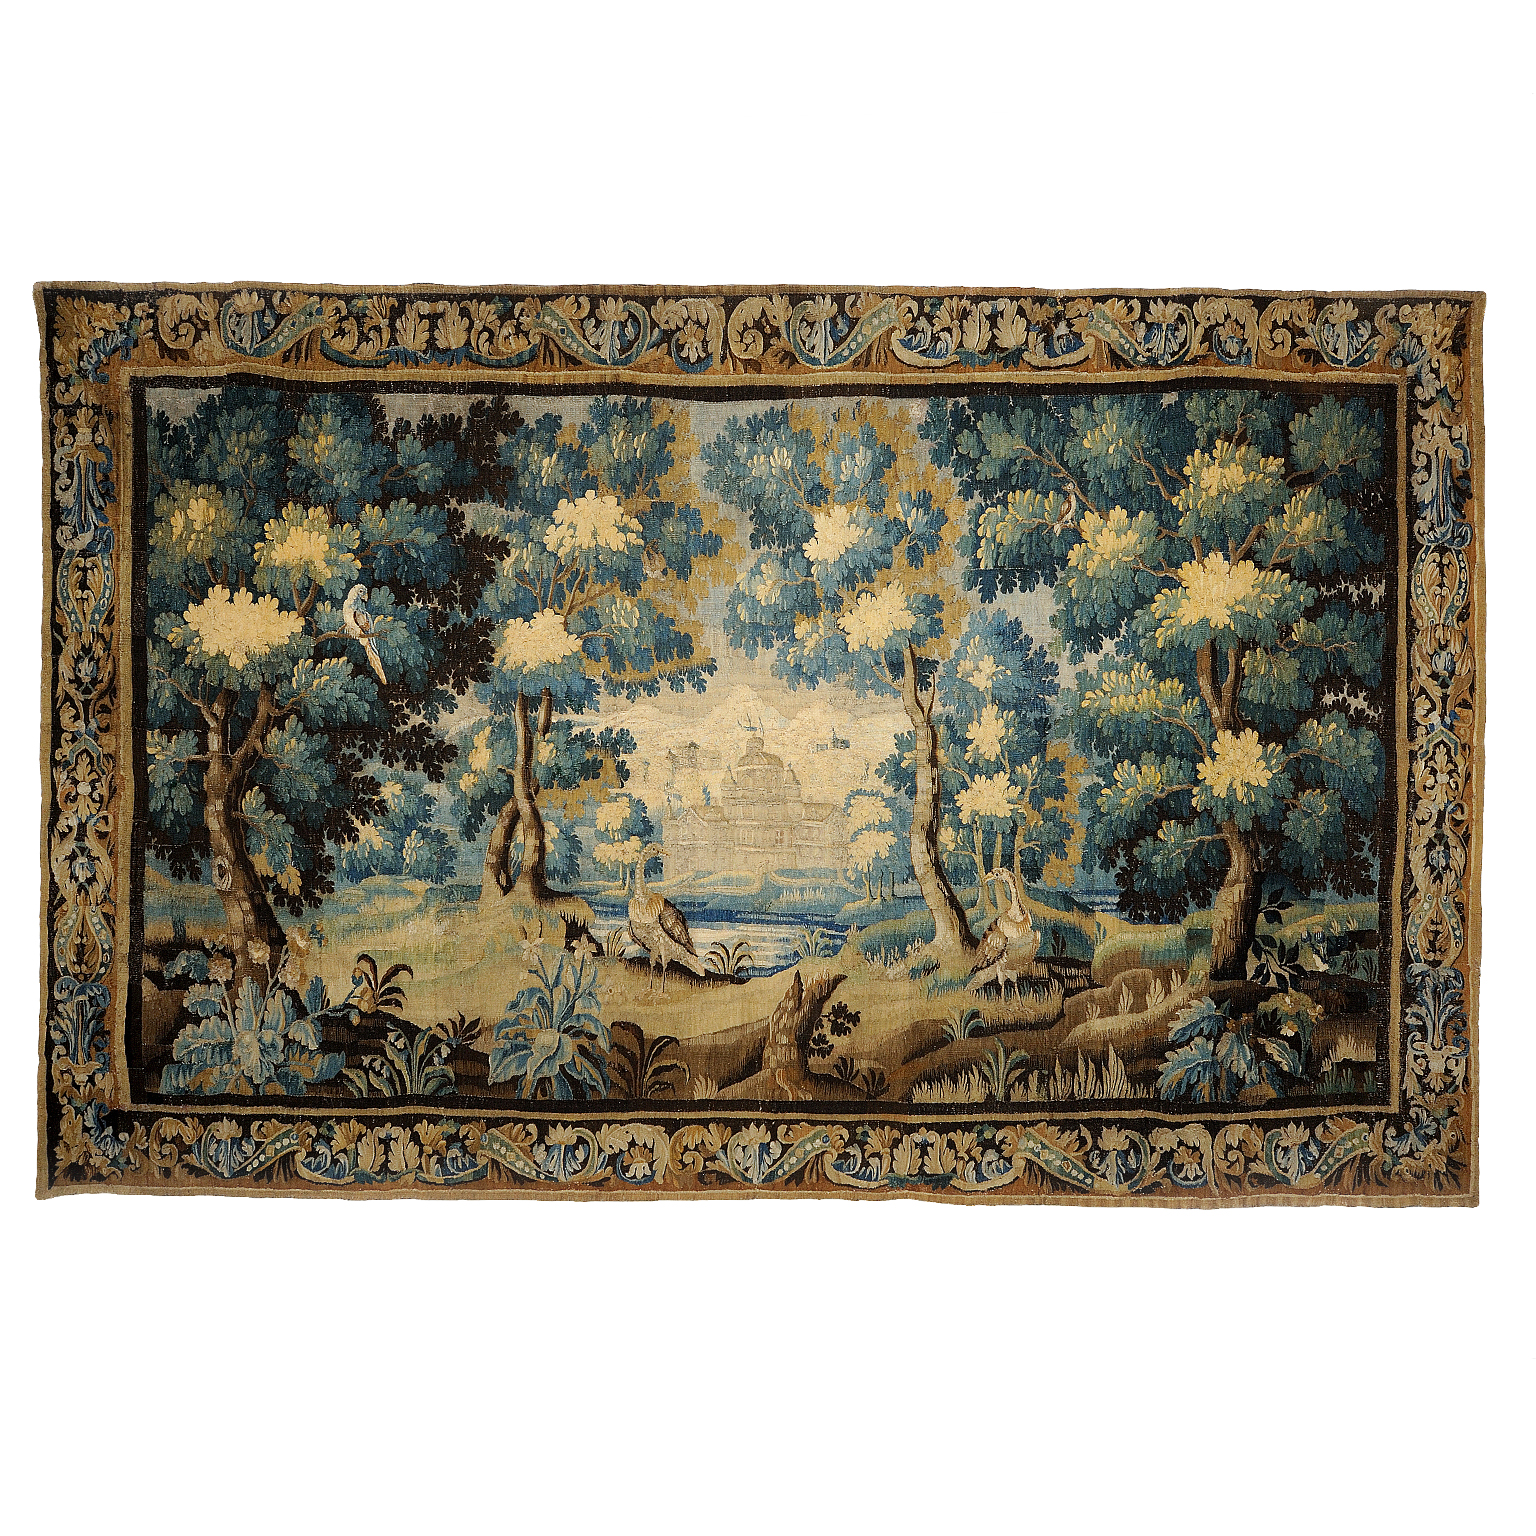 13'11″W x 9'H Hand-woven Antique circa 1680 Wool French Gobelins Weave LOUIS XIV 17TH CENTURY VERDURE TAPESTRY Wall Hanging 12980887